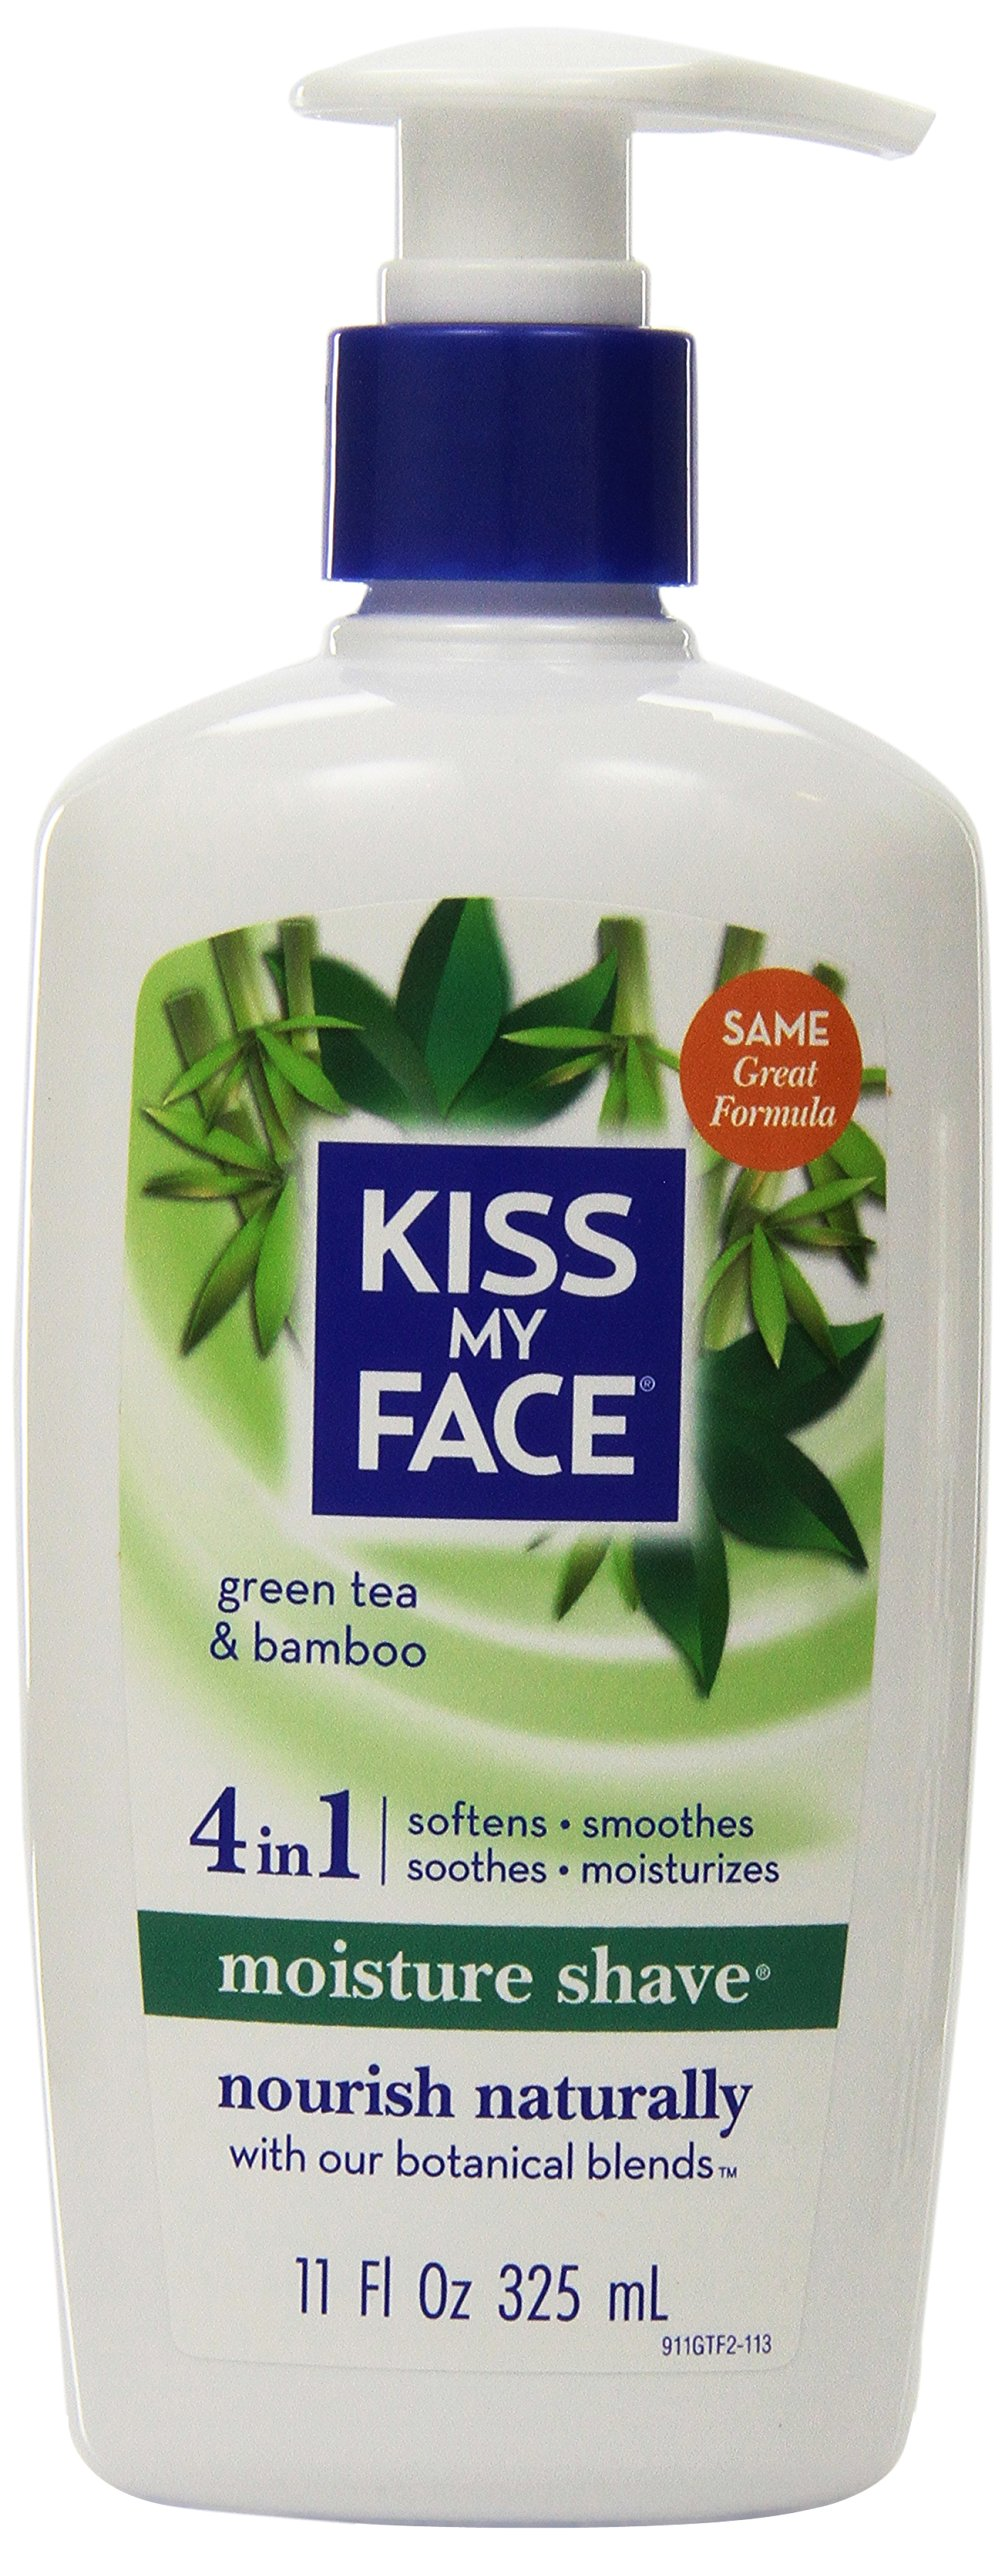 Kiss My Face Moisture Shave Shaving Cream, Green Tea & Bamboo Shaving Soap, 11 oz (Pack of 12) by Kiss My Face